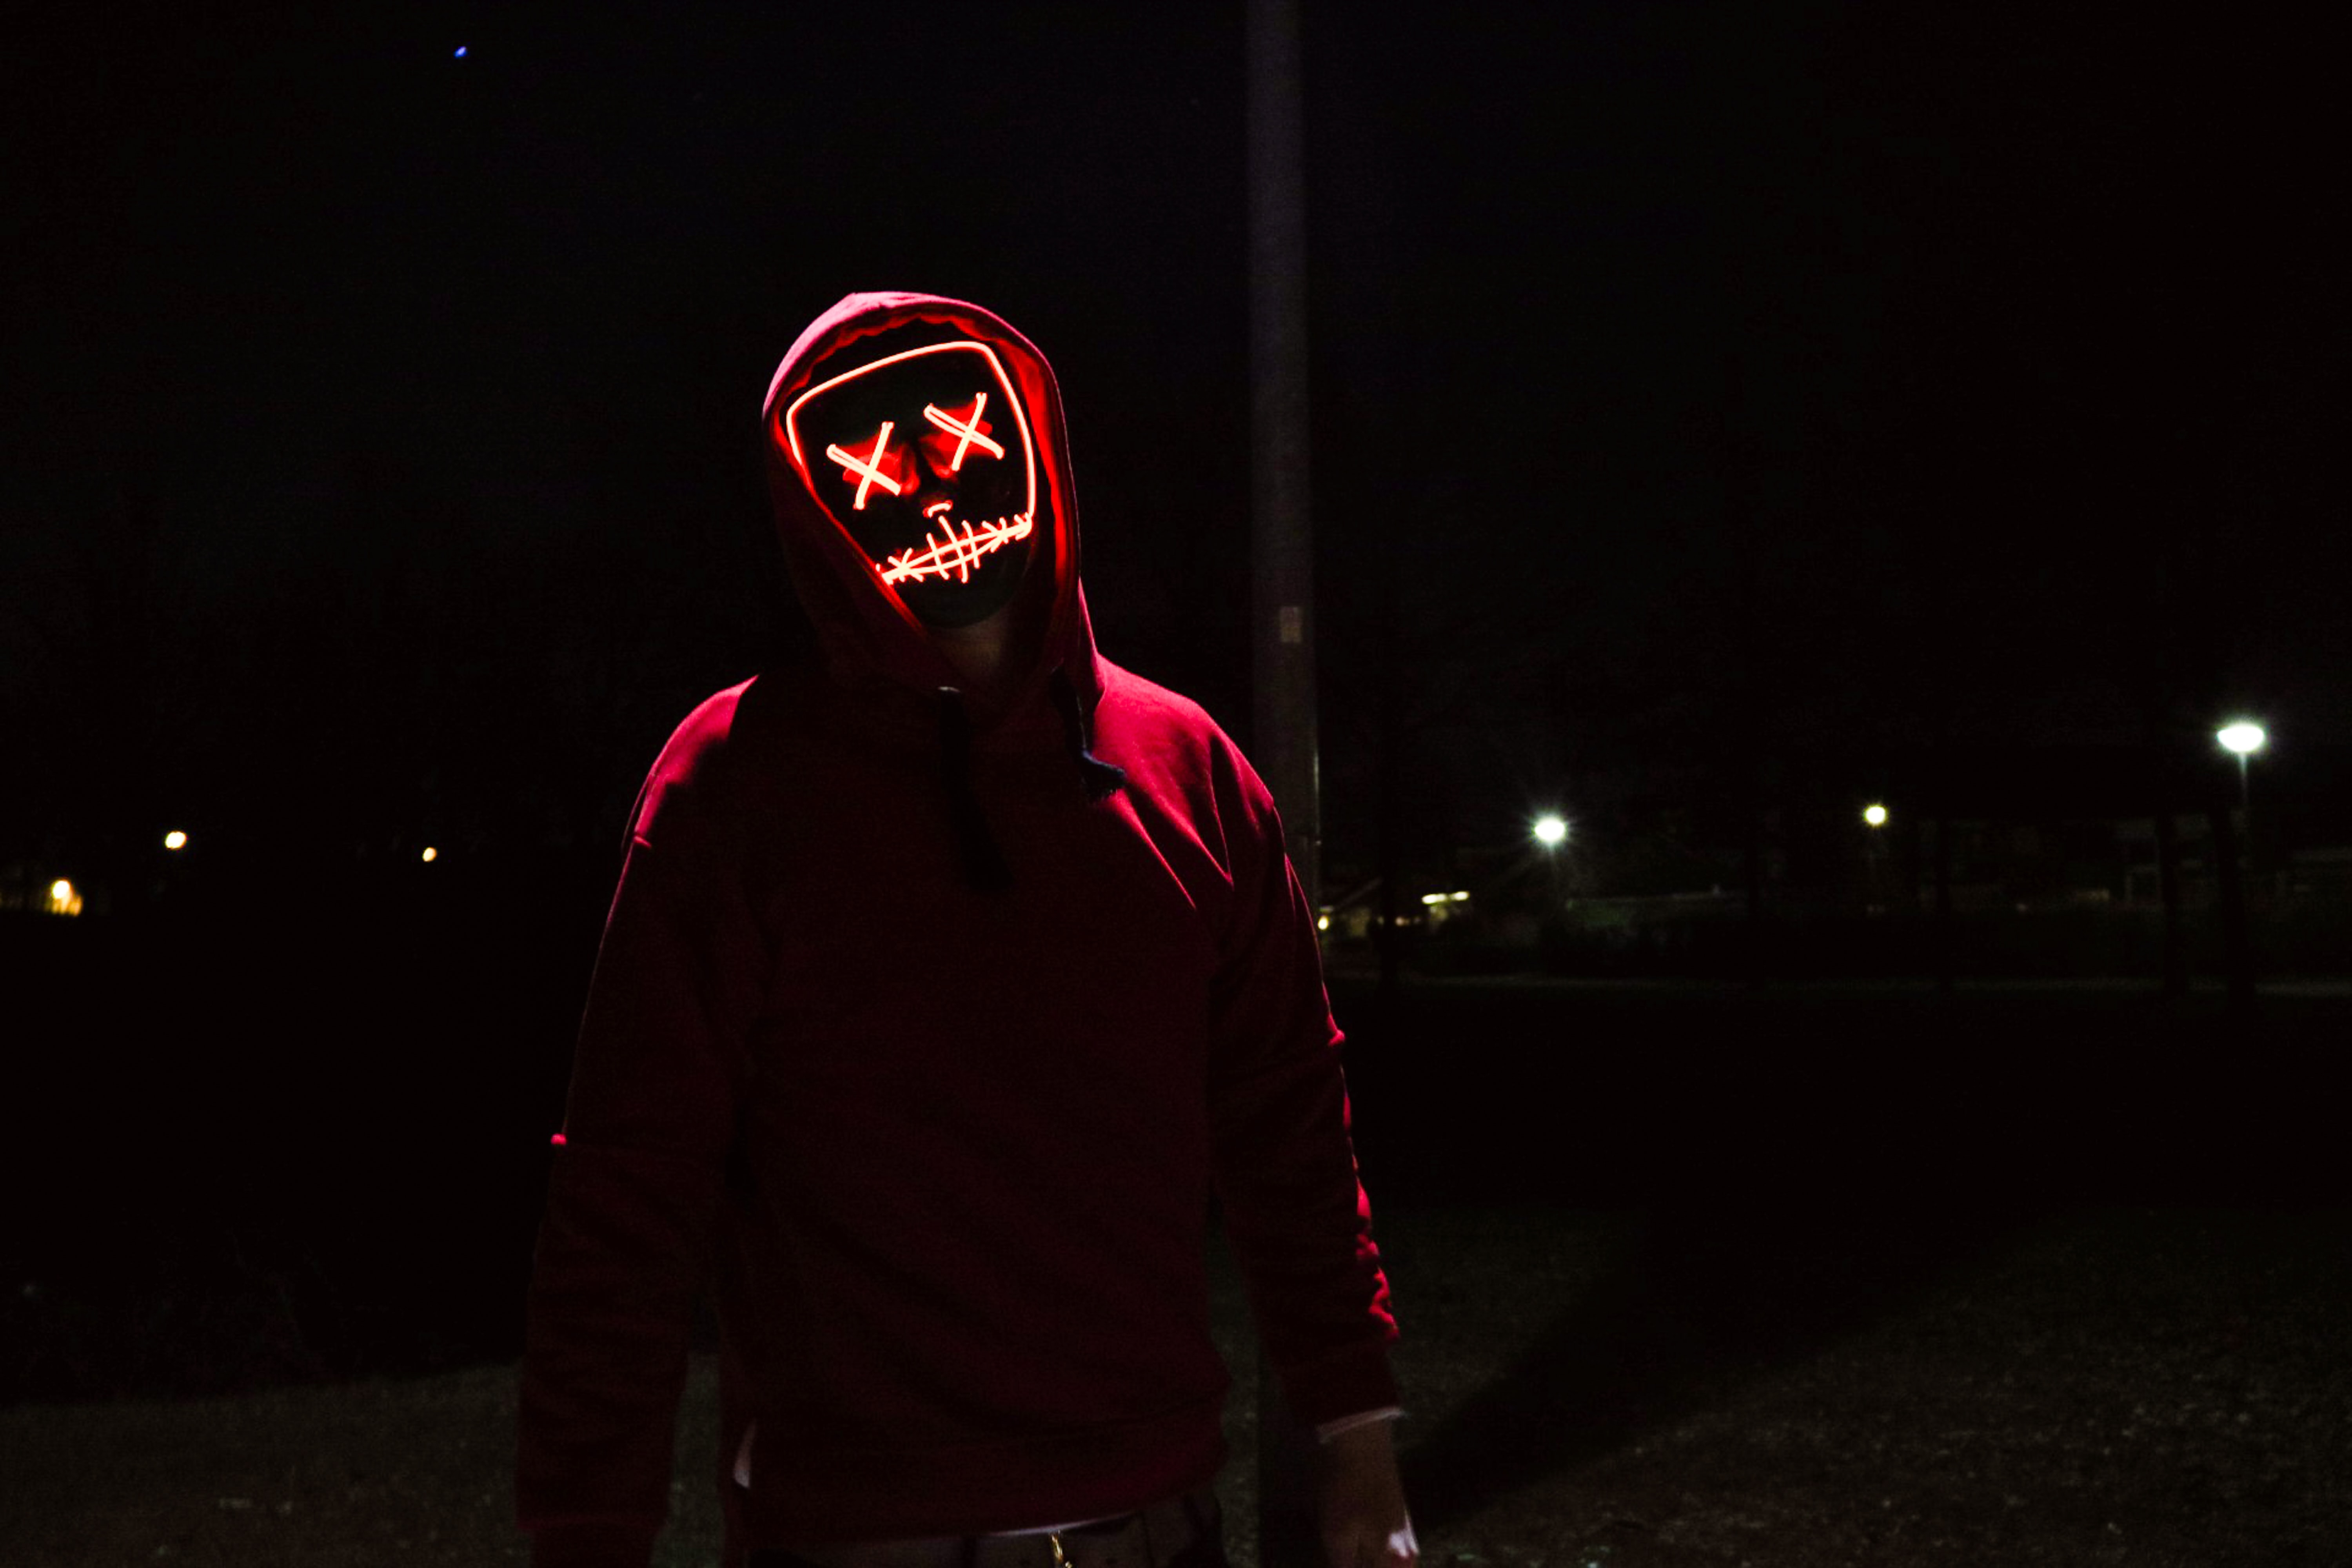 person wearing black mask standing near post